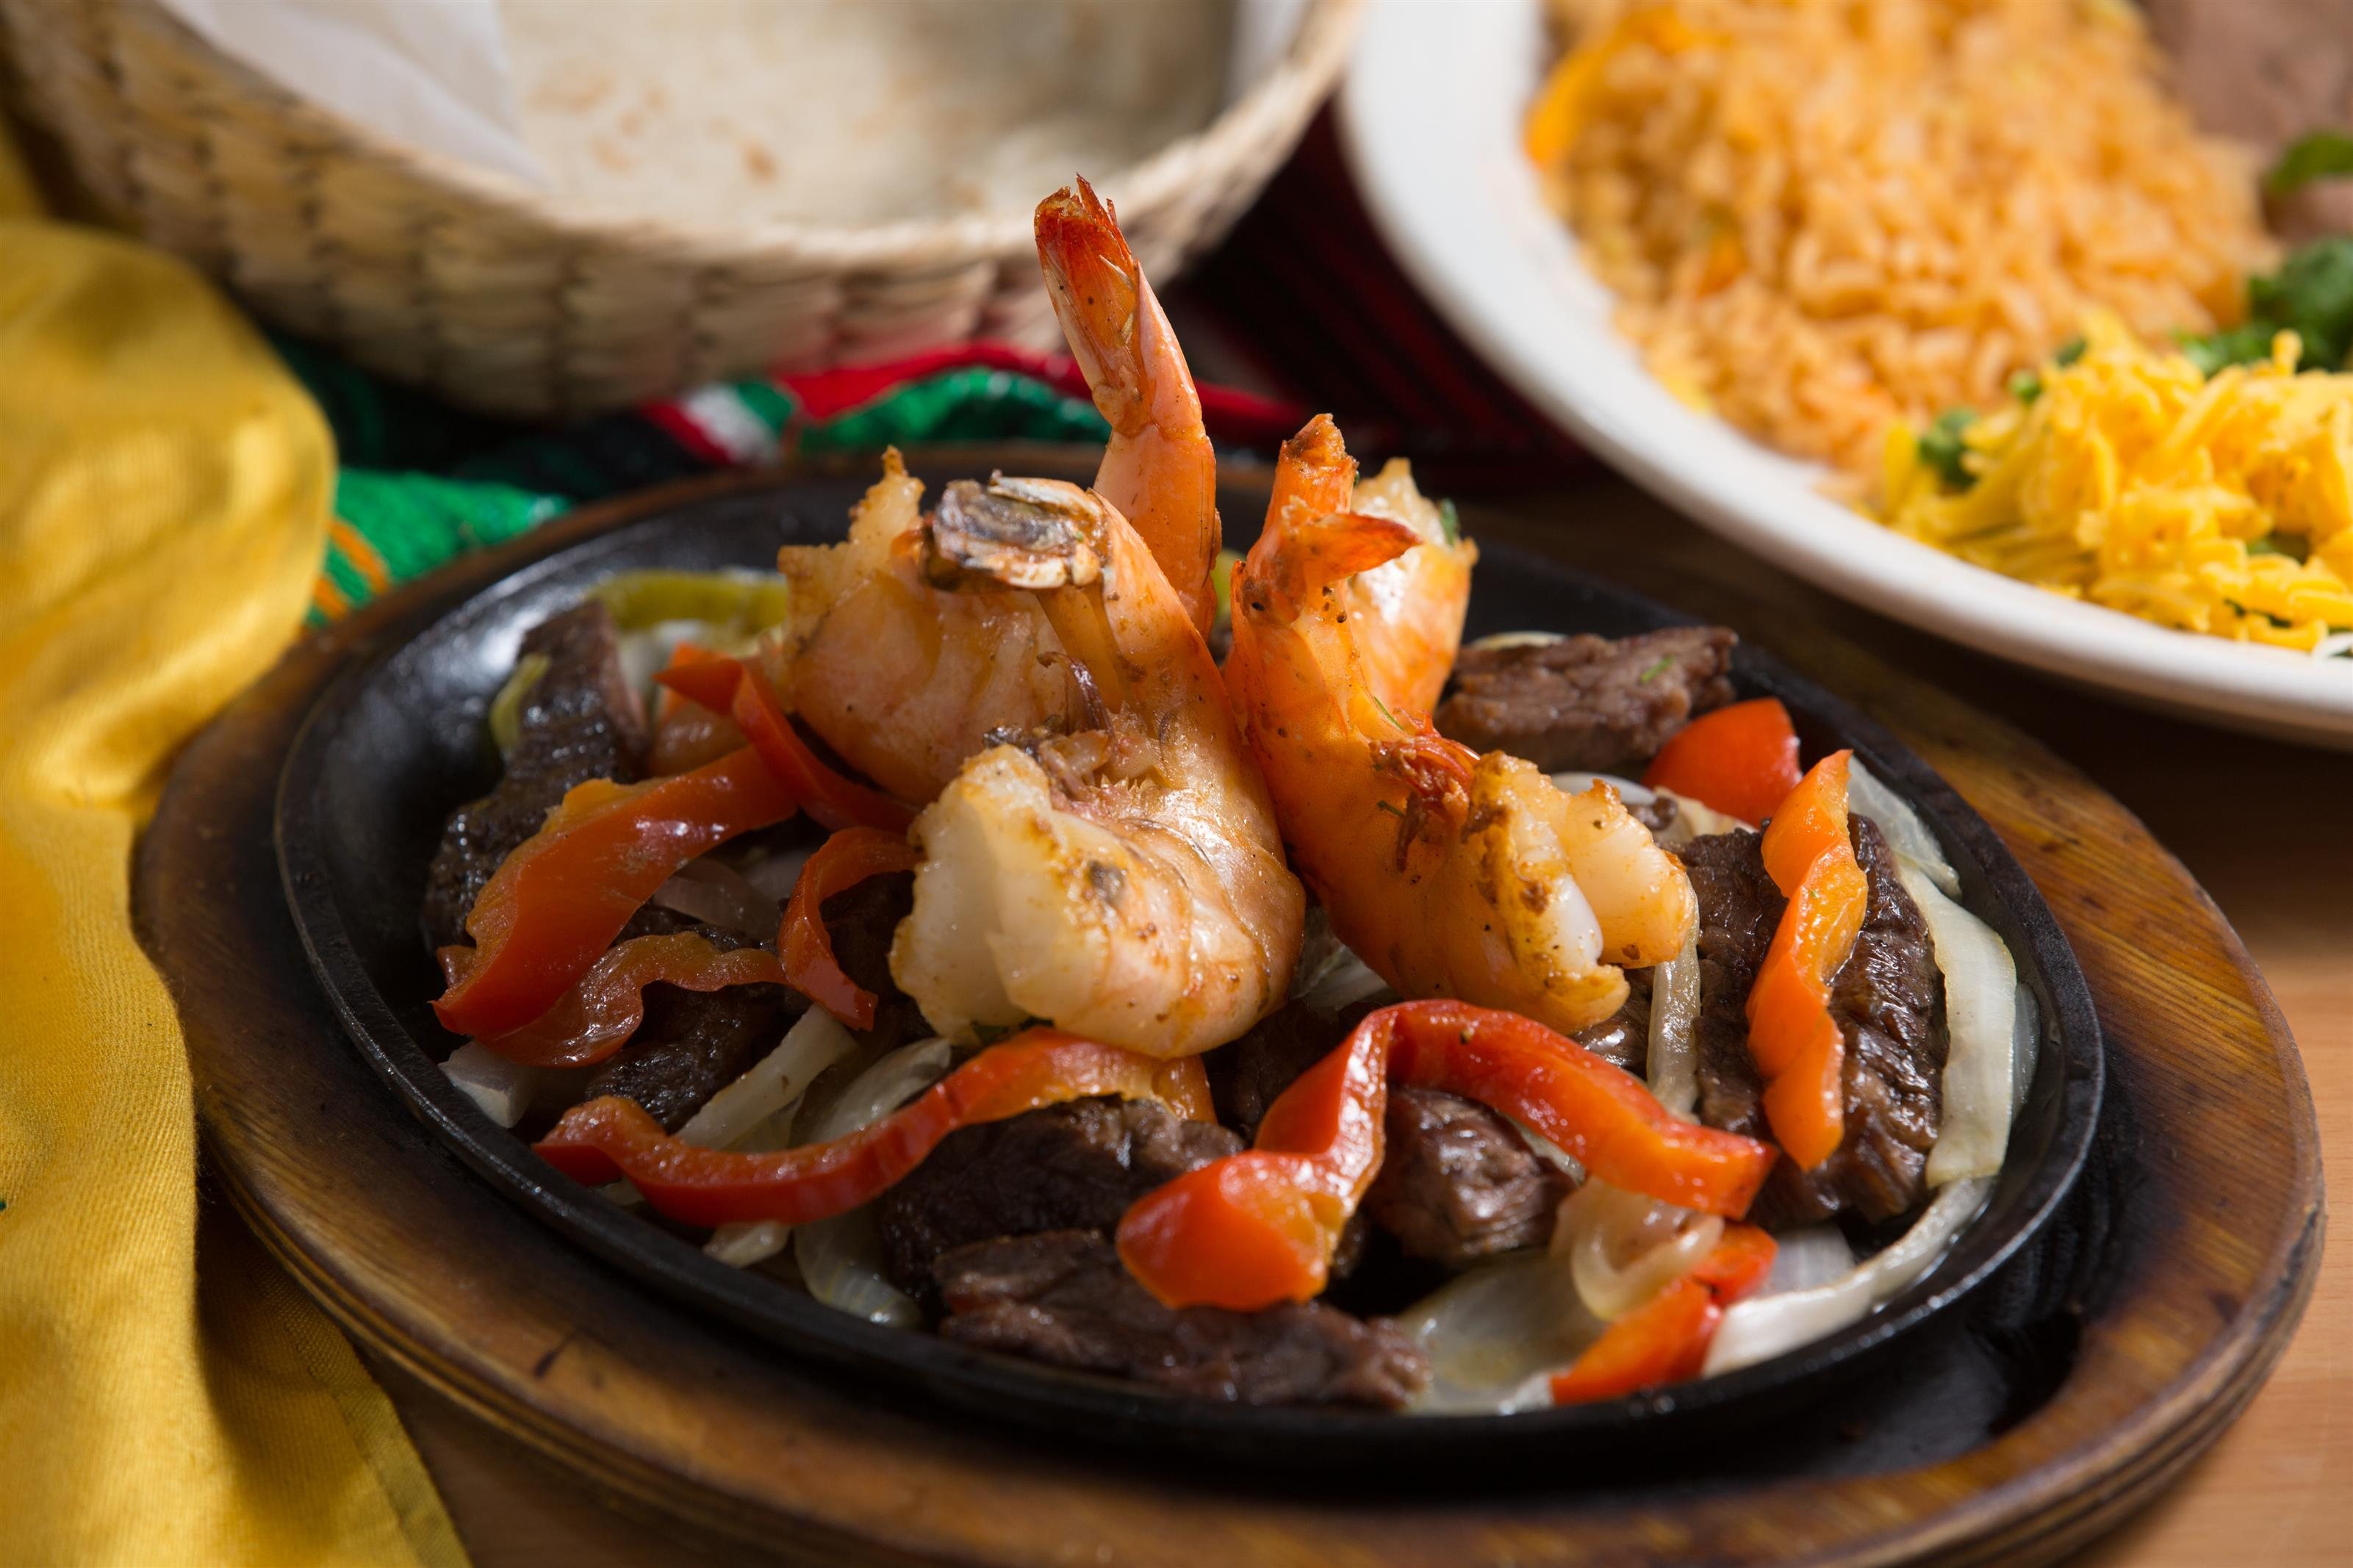 shrimp and steak fajitas with peppers and onions